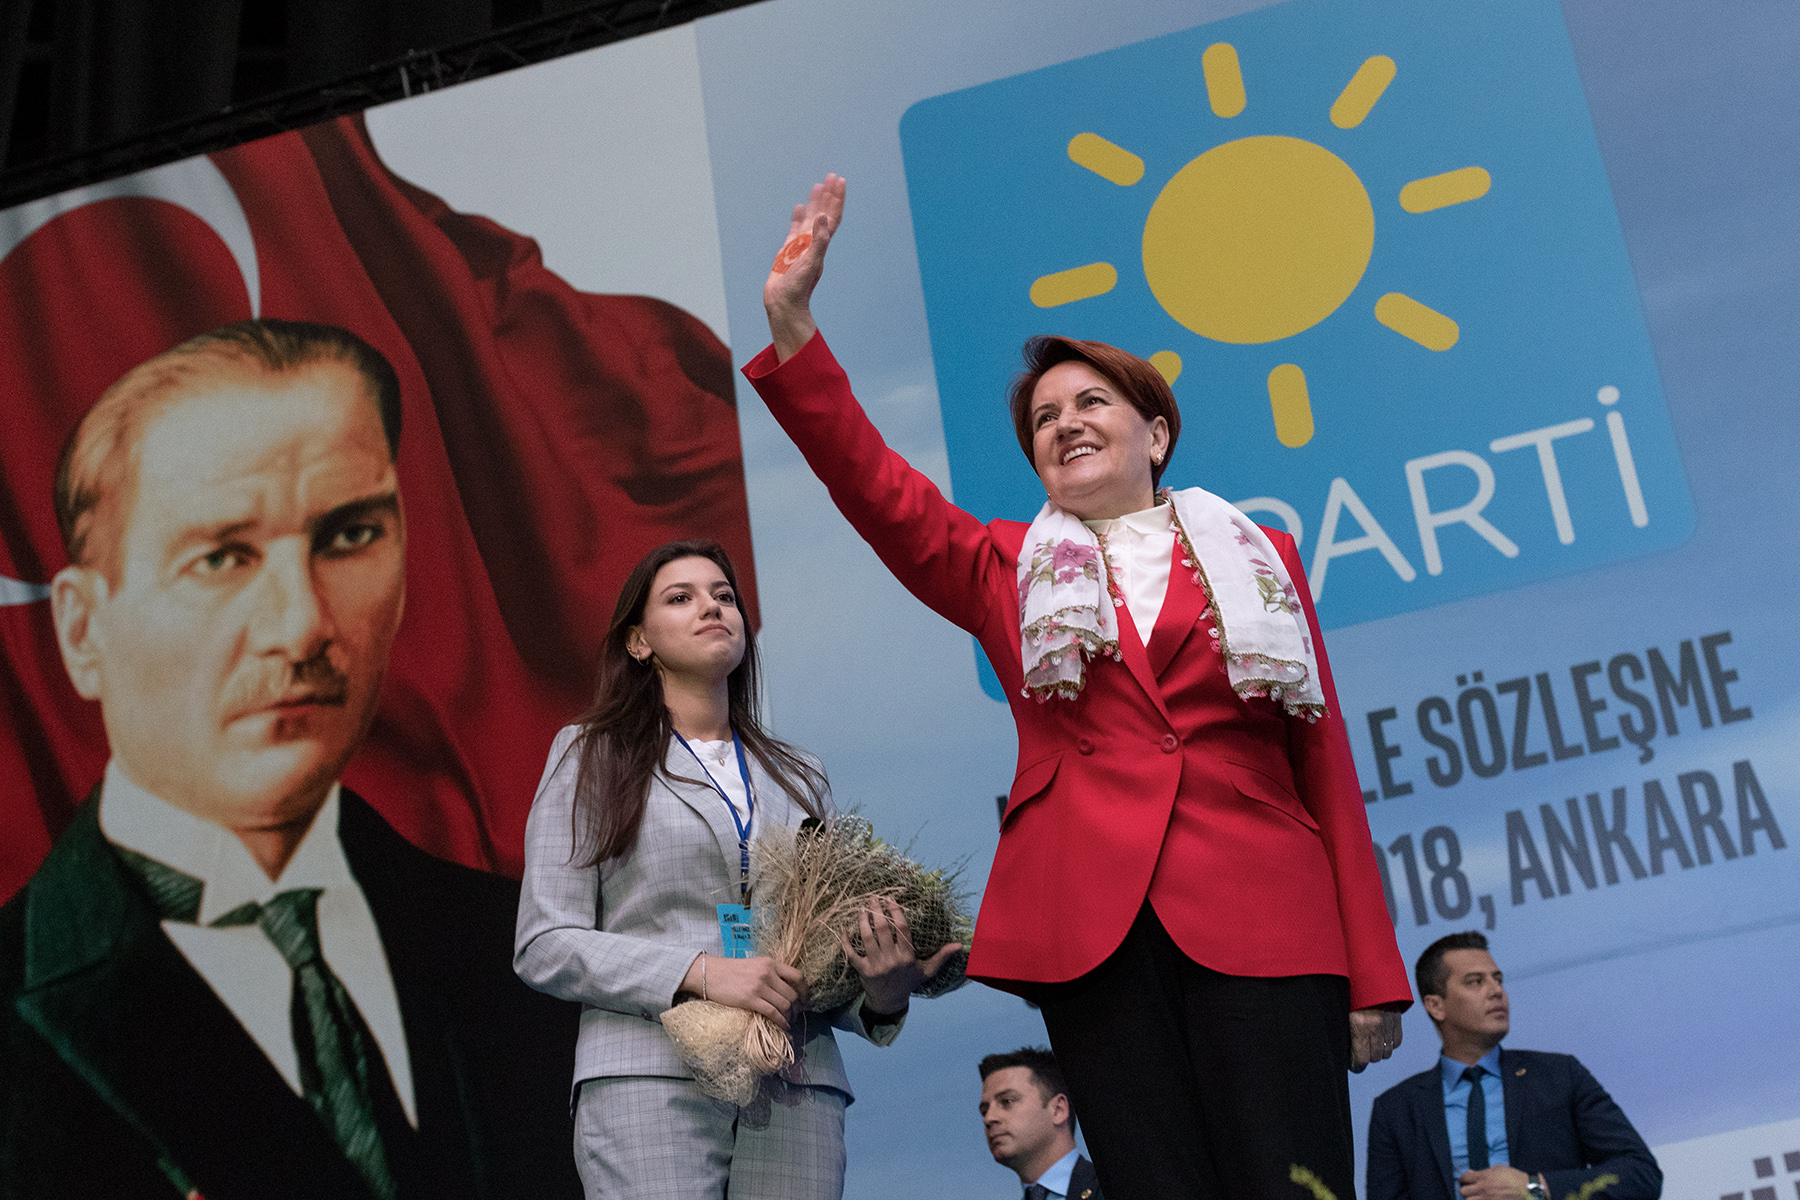 The candidate of IYI Parti Meral Akşener, former minister of the Interior, salutes her supporters in Ankara as she arrives on the stage for a rally on May 30, 2018